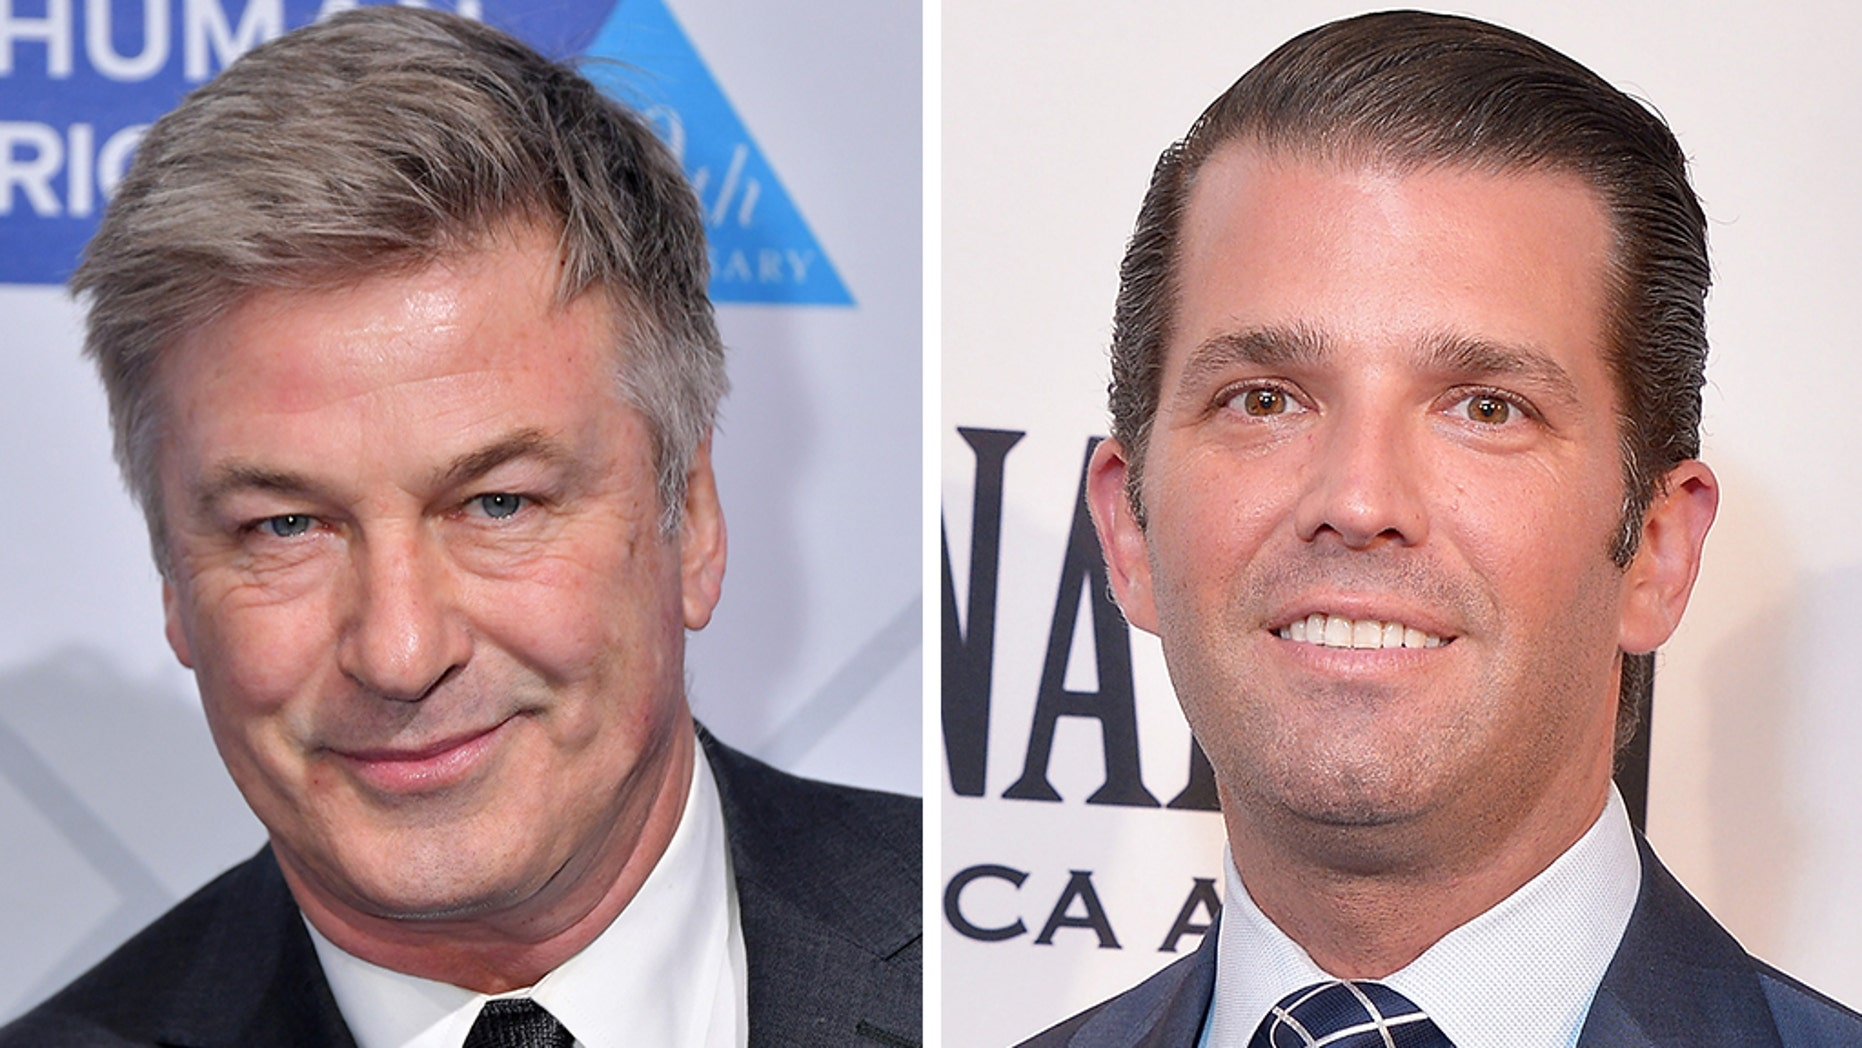 Alec Baldwin and Donald Trump Jr., engaged in a Twitter sparring match on Tuesday.